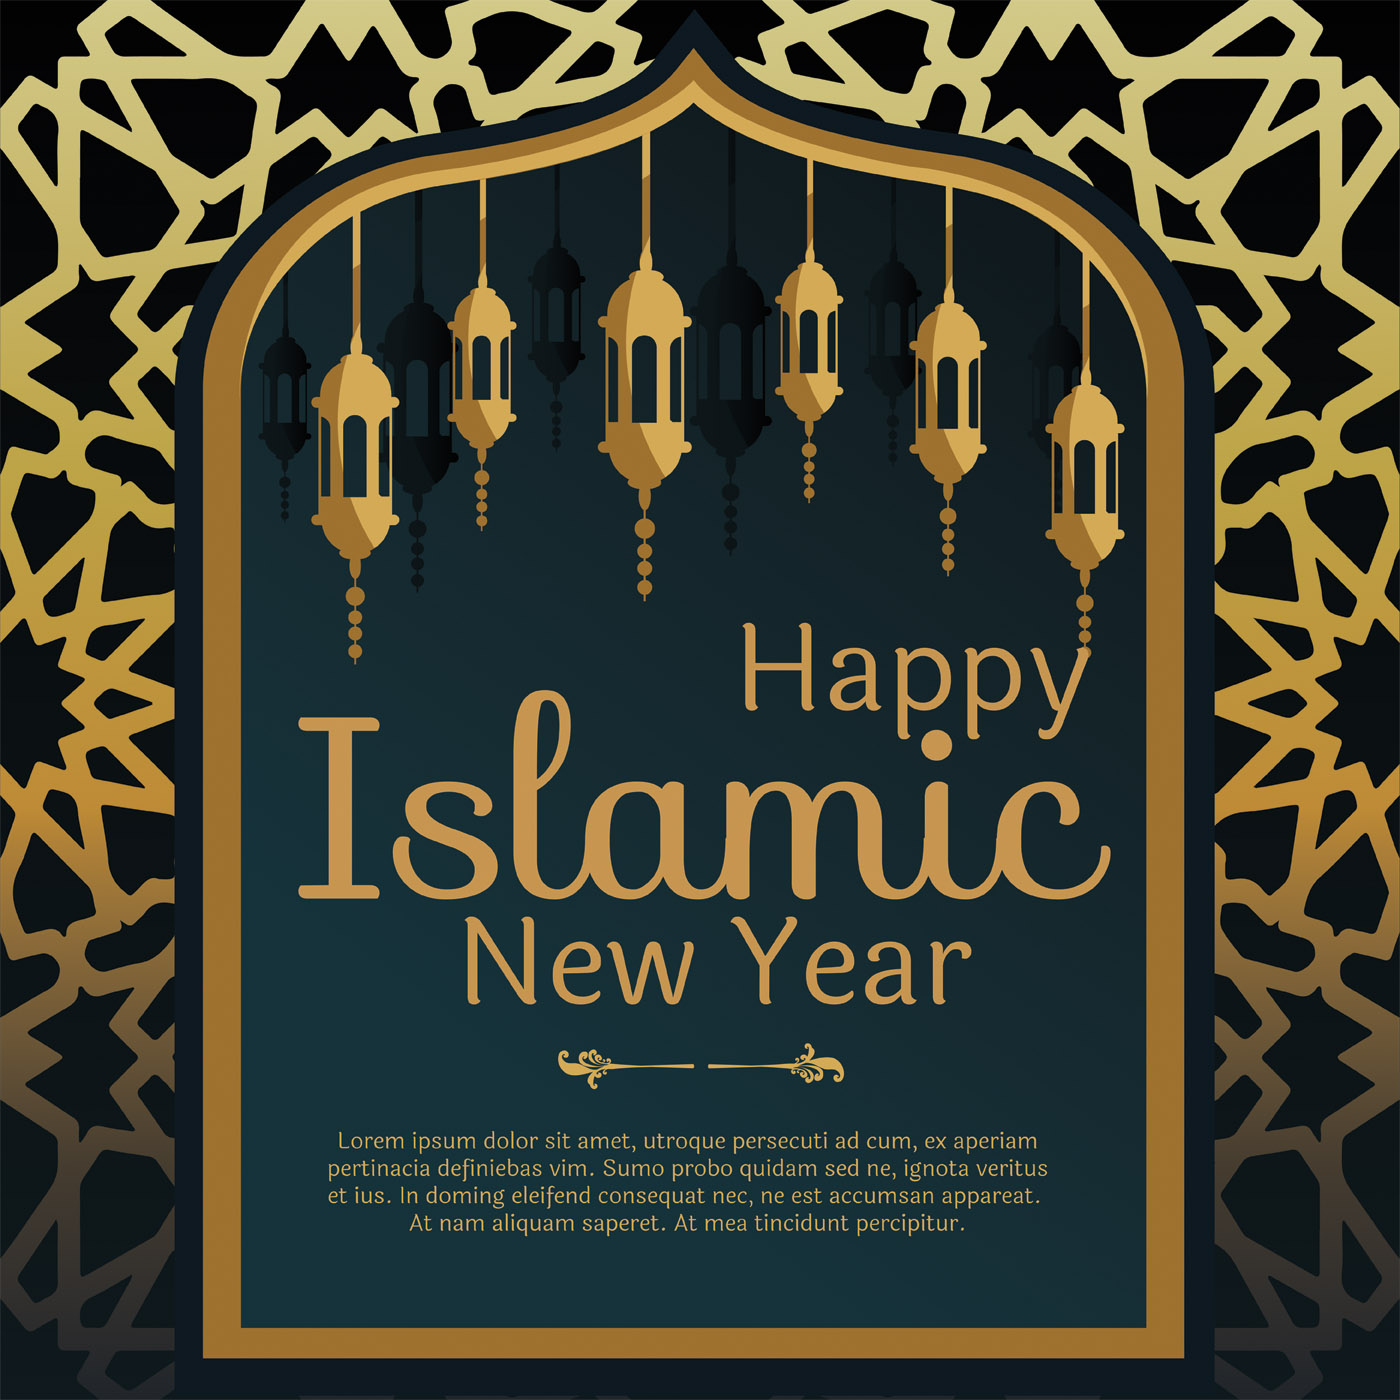 Islamic New Year Greeting Card Vector - Download Free ...